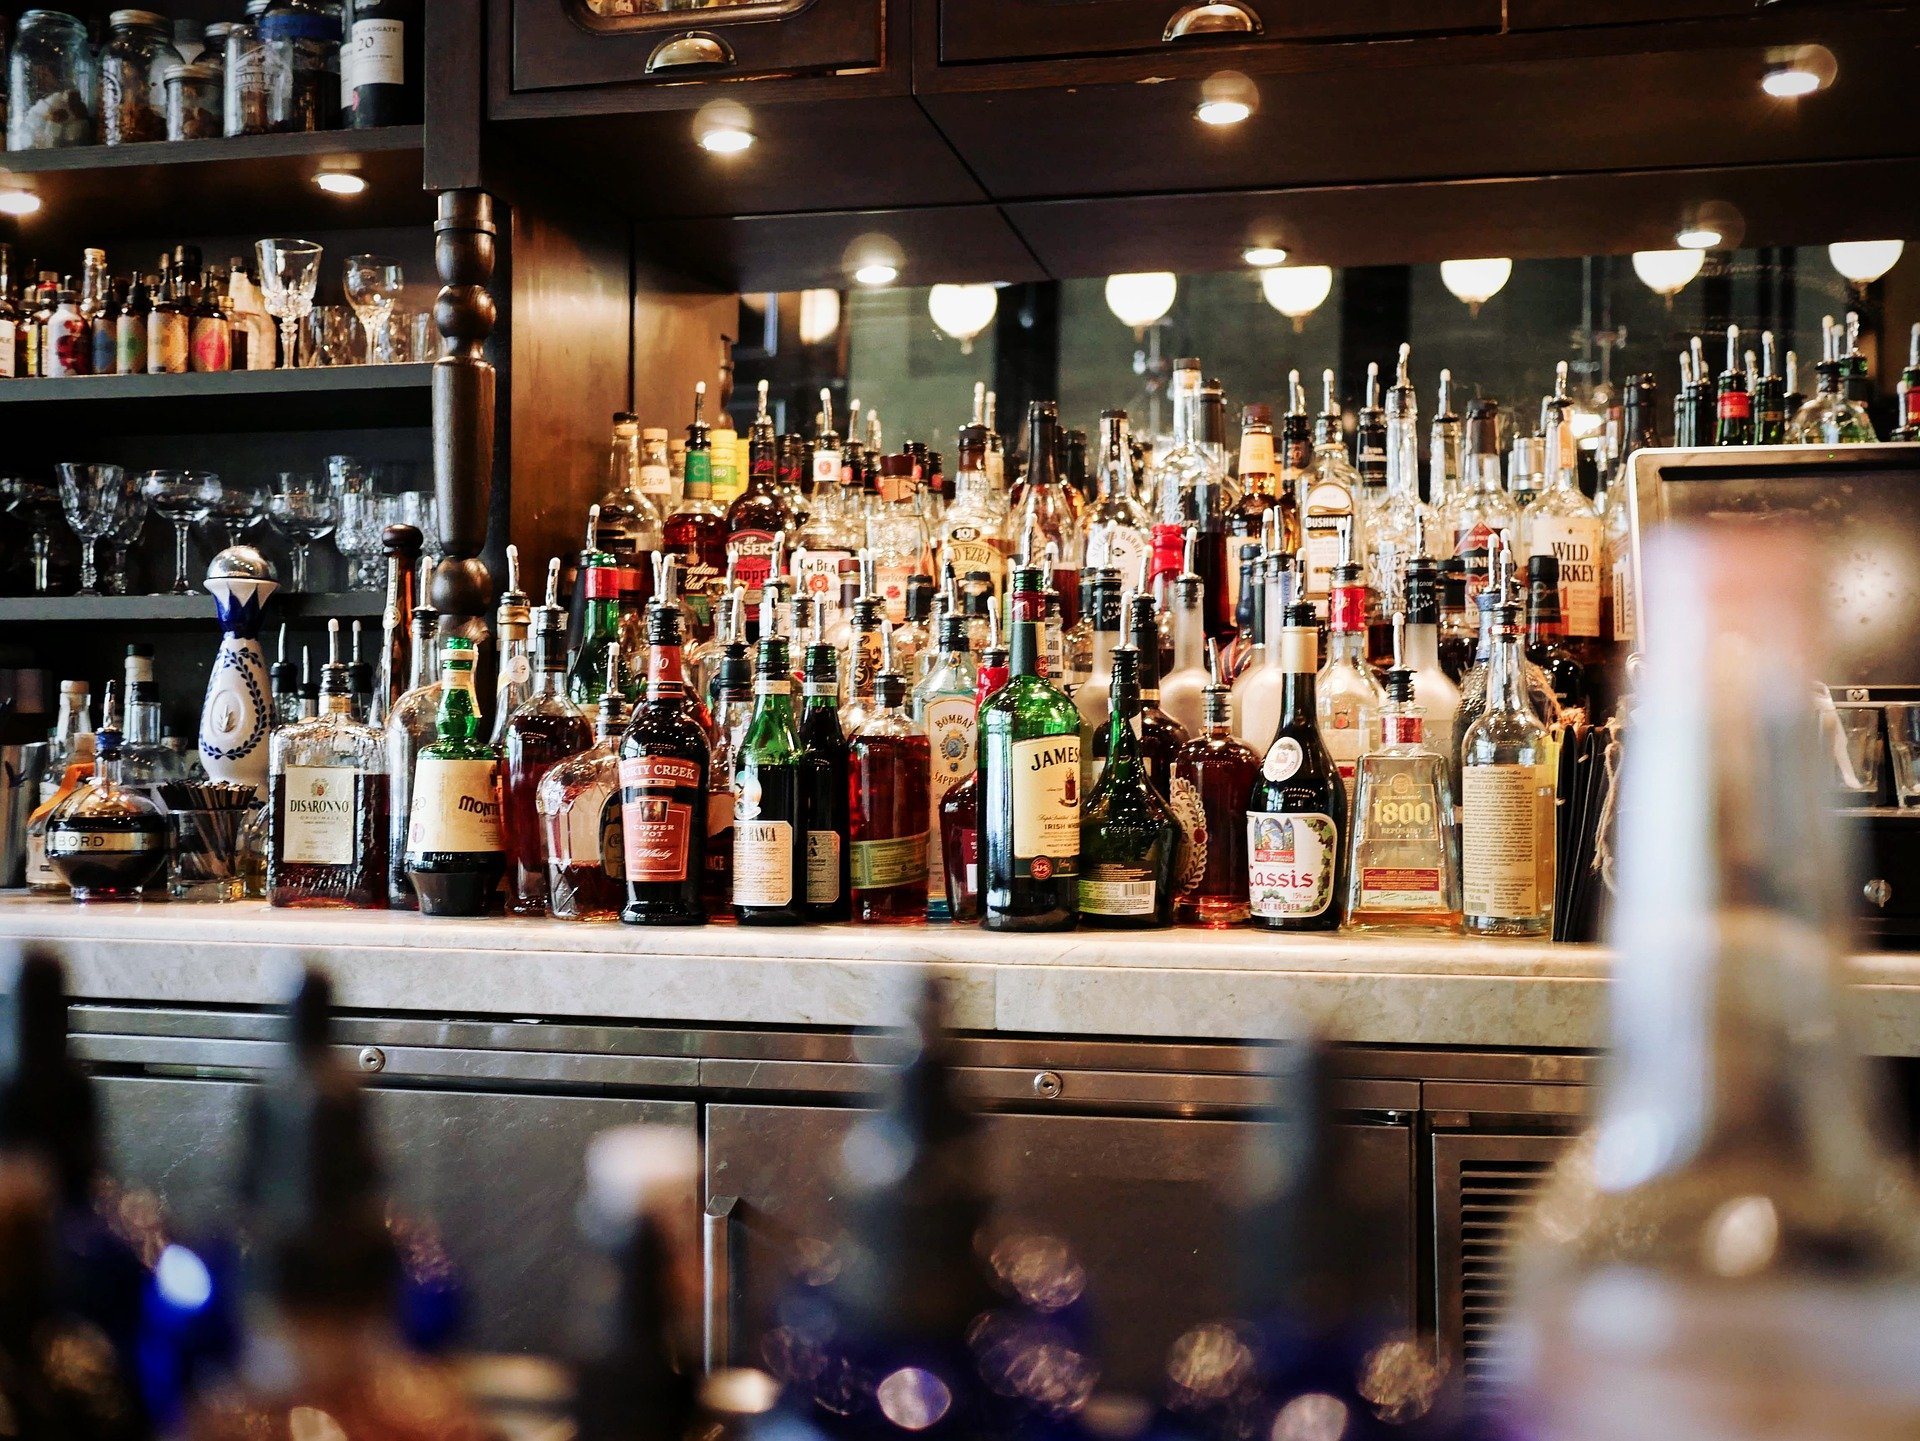 Pictured - Alcoholic beverages at a bar   Source: Pixabay